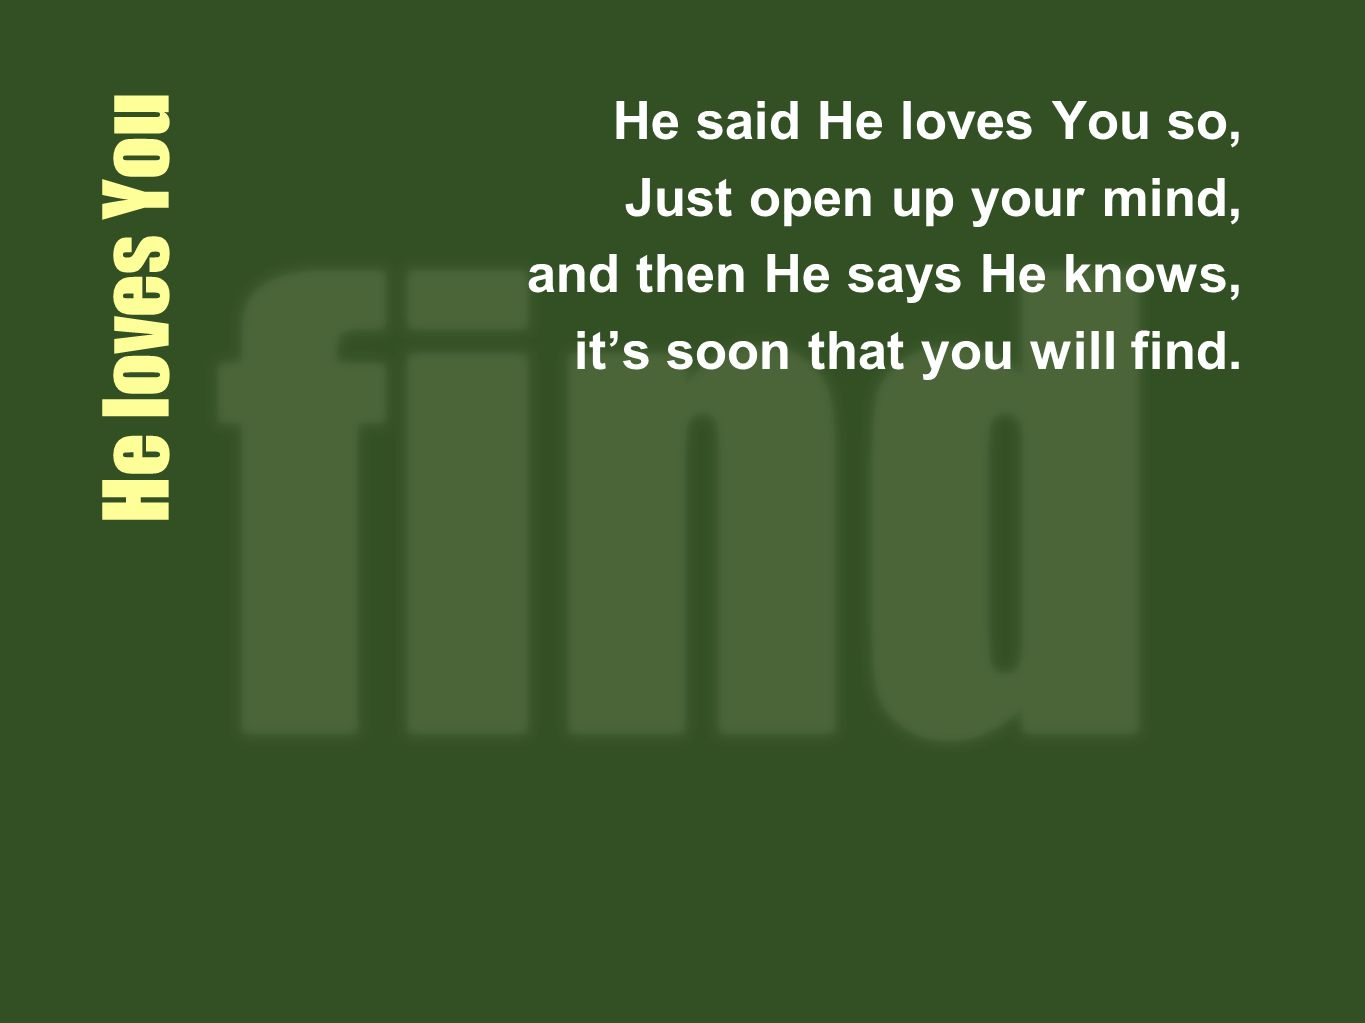 He loves You He said He loves You so, Just open up your mind, and then He says He knows, its soon that you will find.